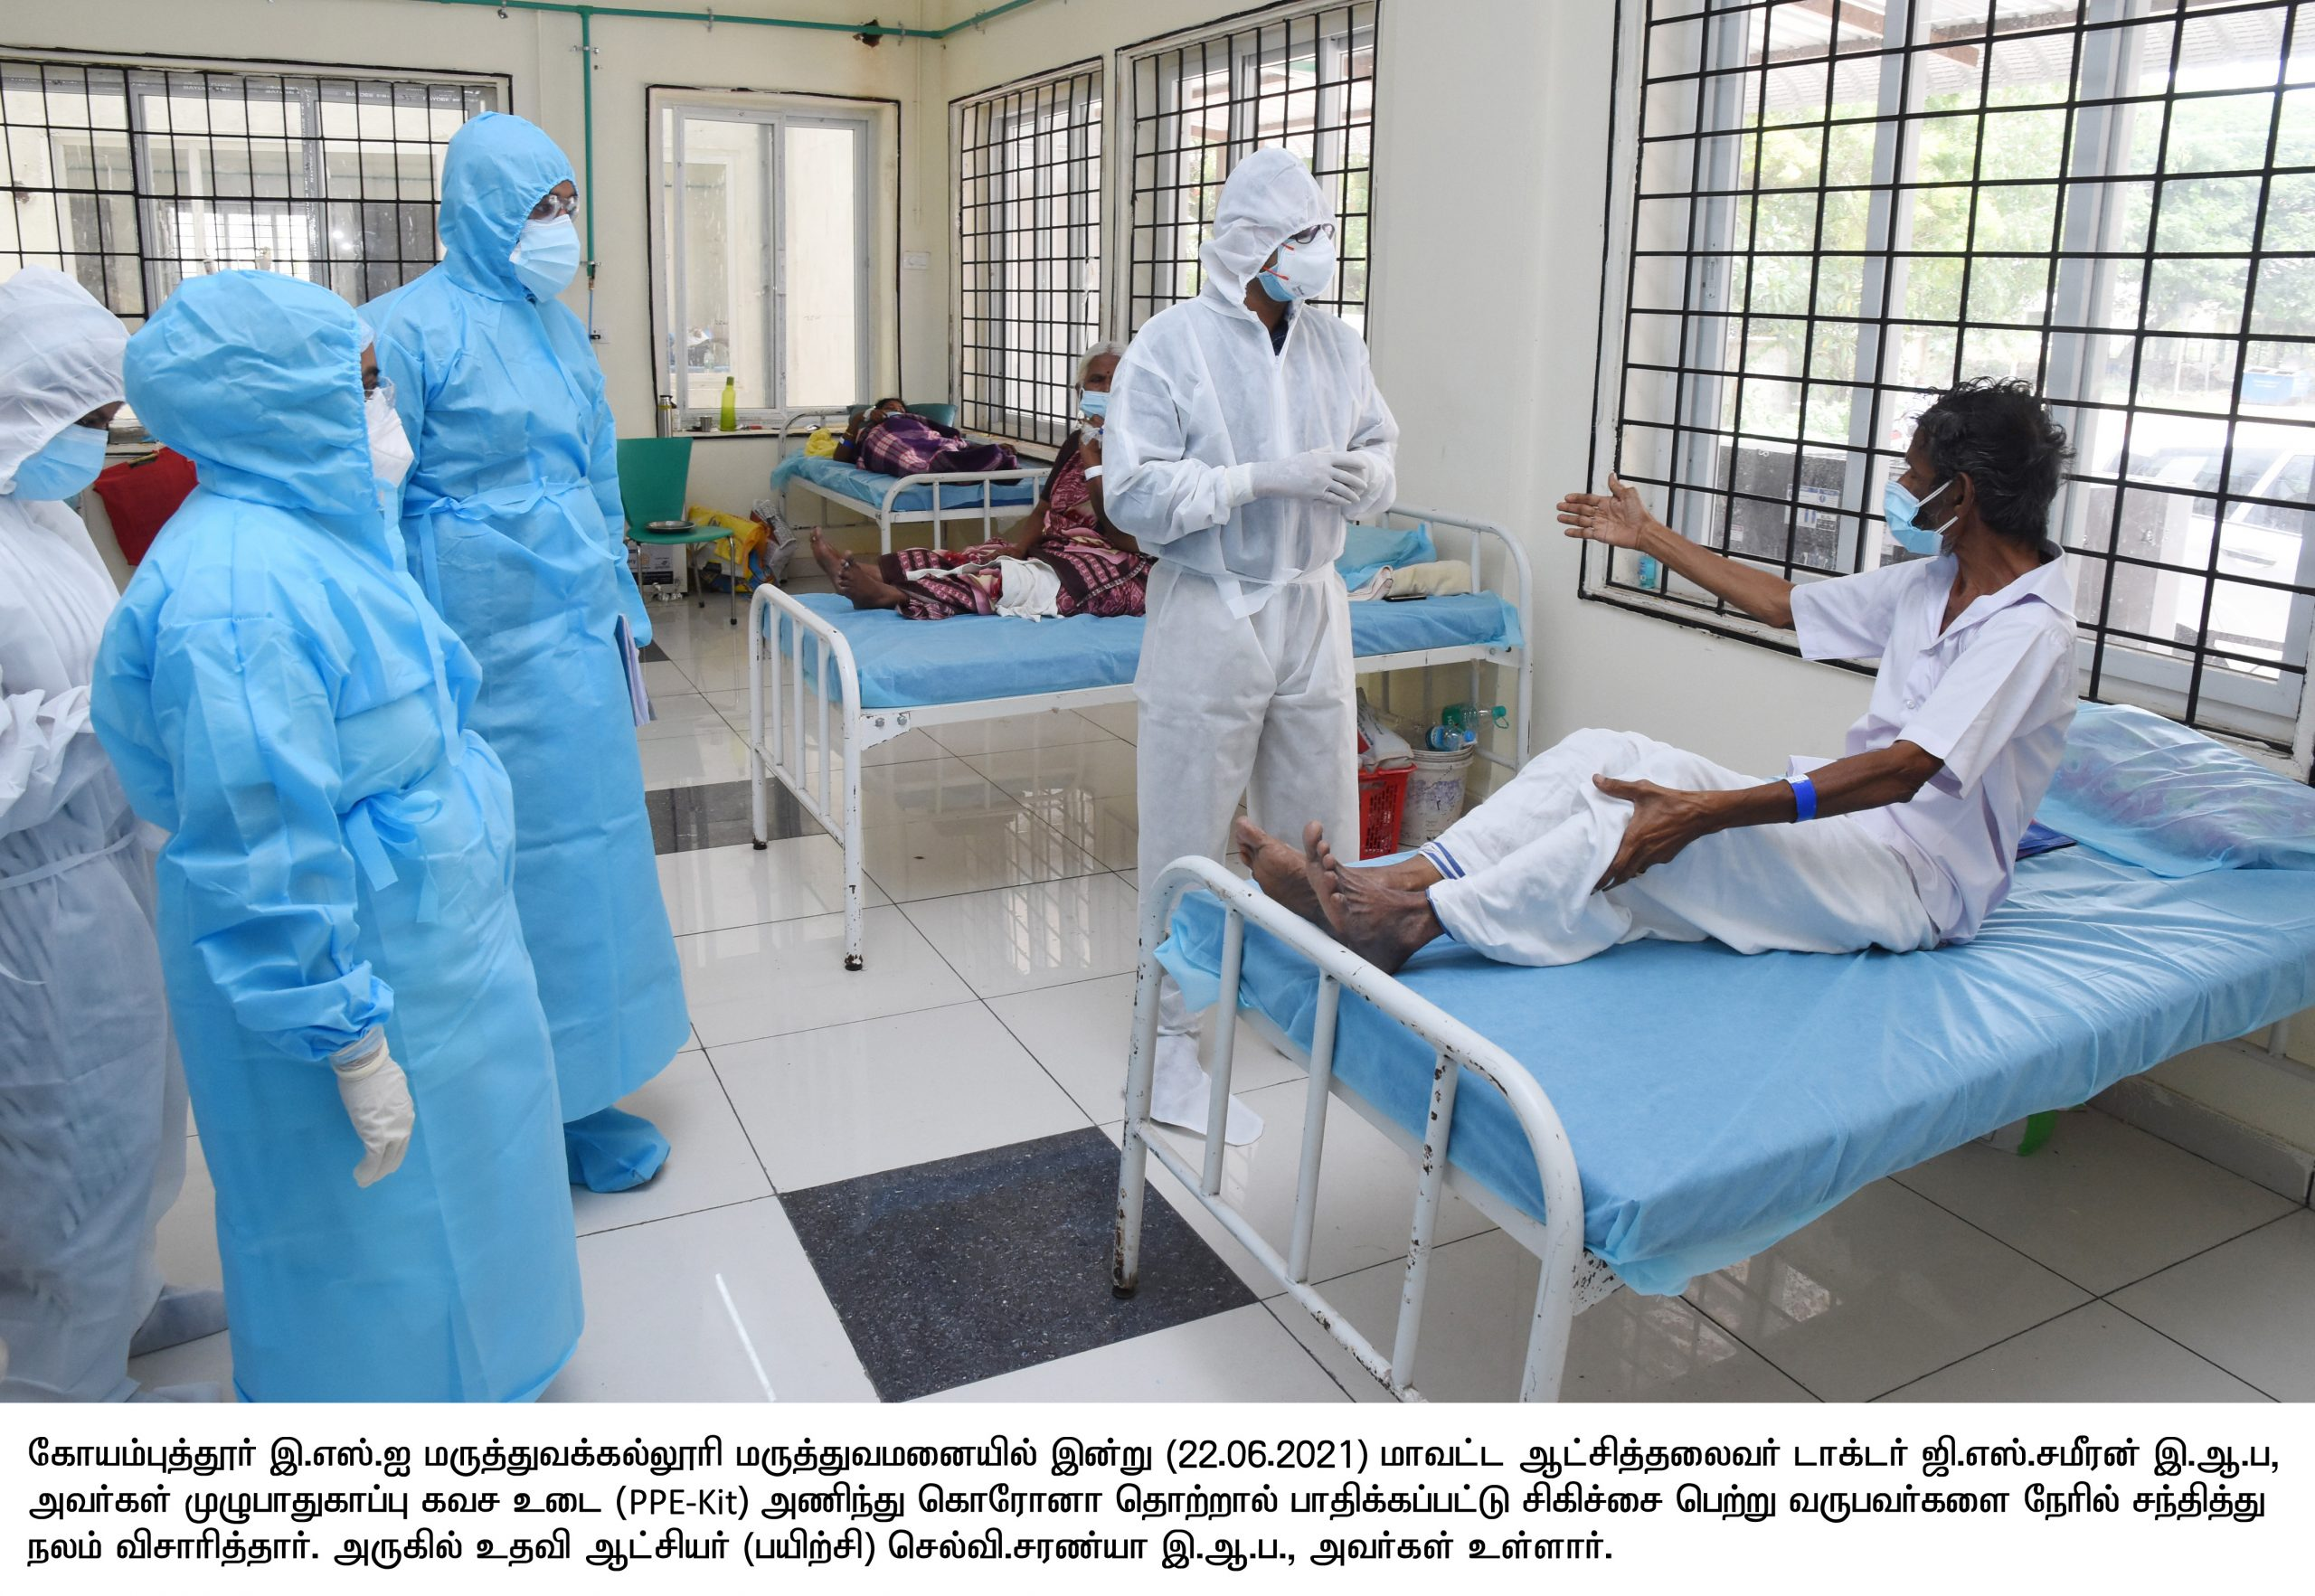 Corona Virus Prevention work Inspected by the District Collector at Govt. Medical College Hospital and E.S.I. Hospital